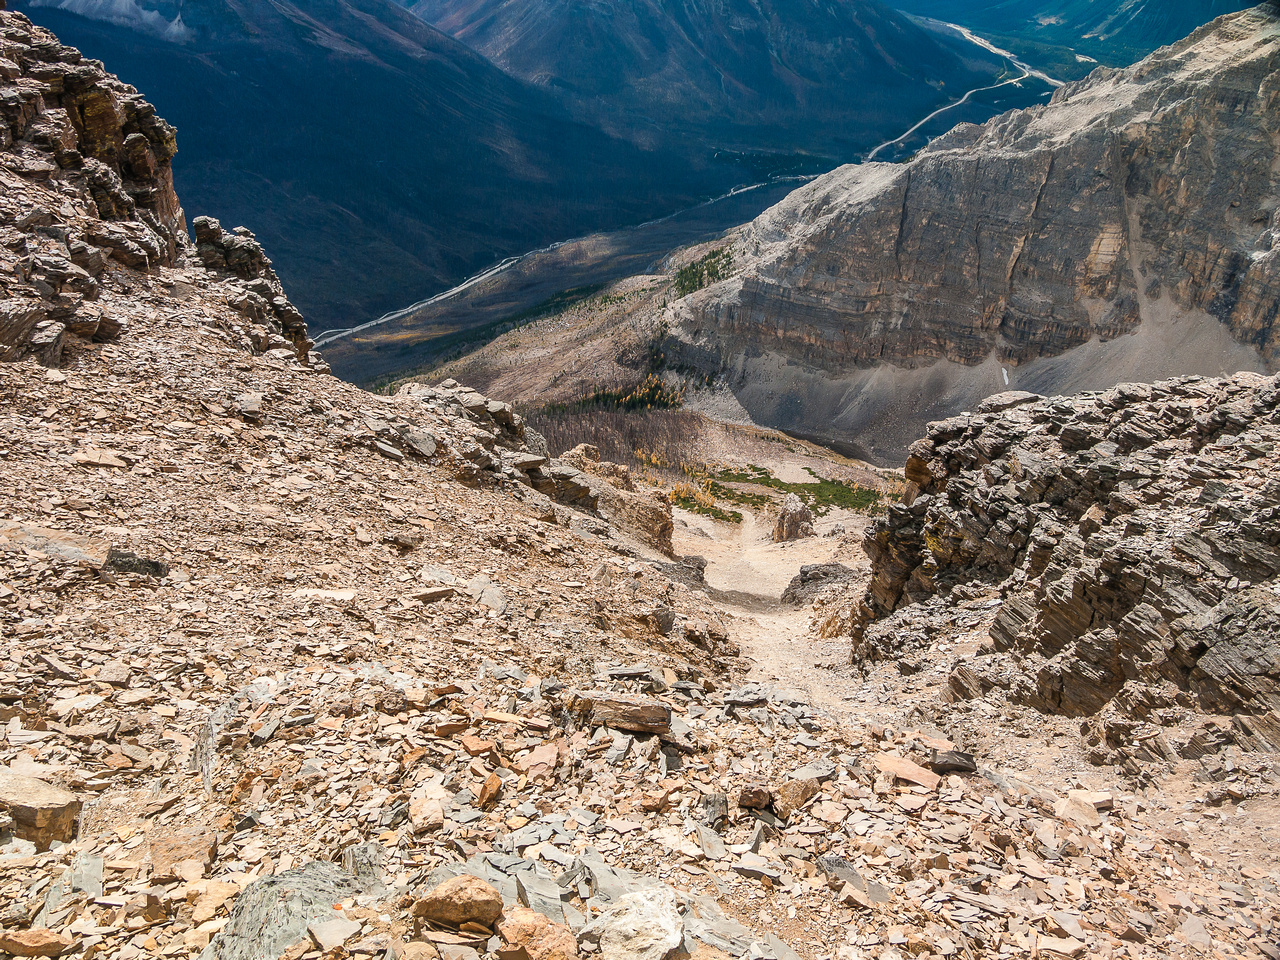 Looking down my descent route via the easy south ridge.